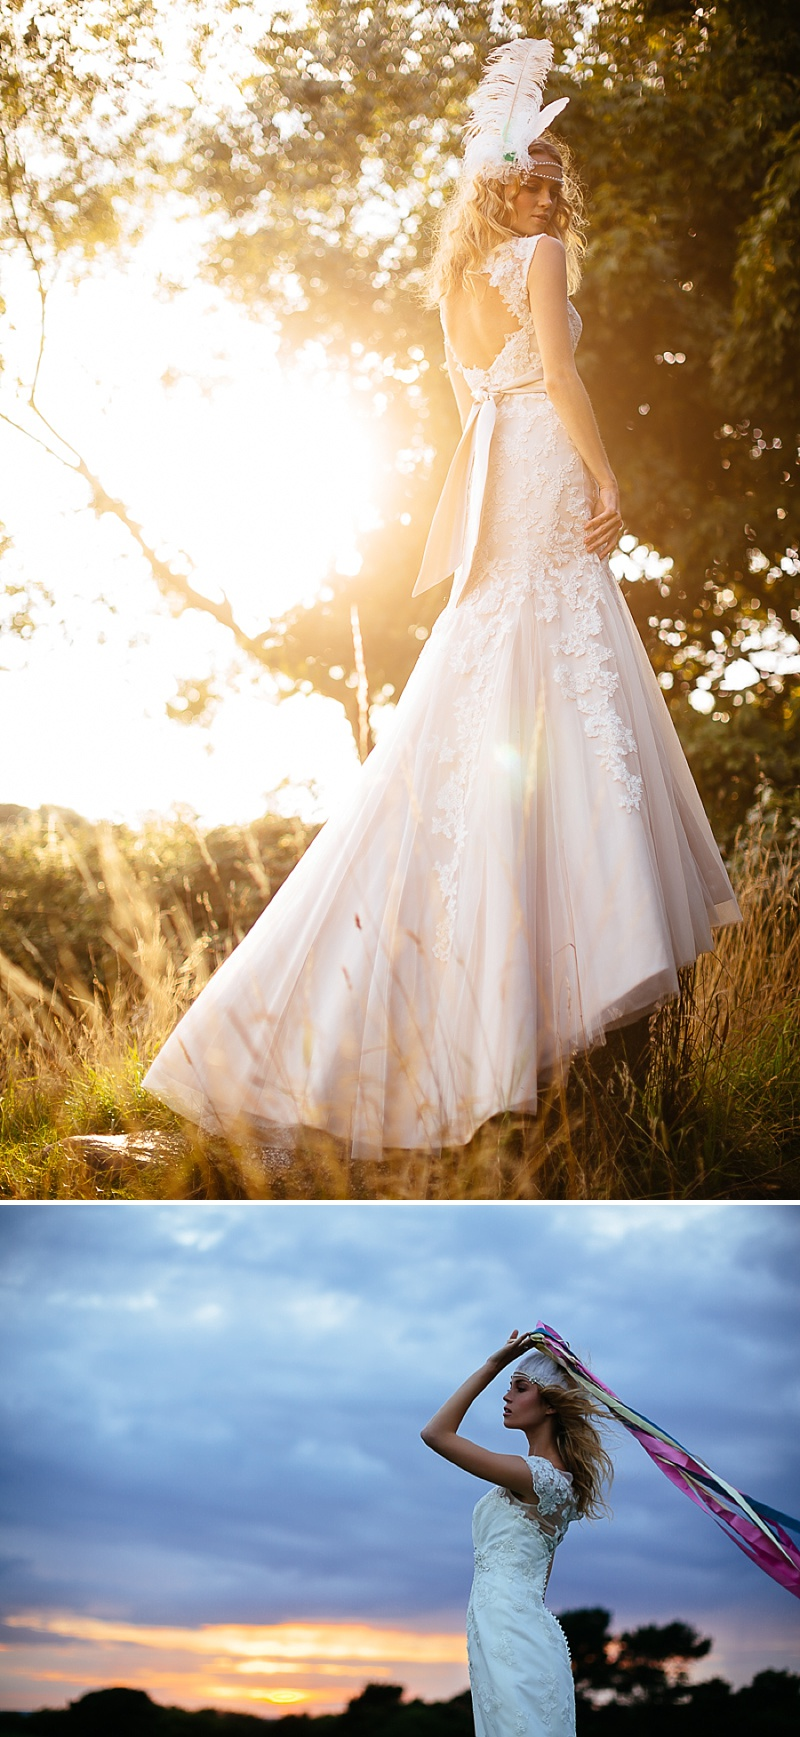 A Boho Earth-Child Themed Bridal Inspiration Shoot, Gowns by Diane Harbridge, Images from Phil Drinkwater_0008